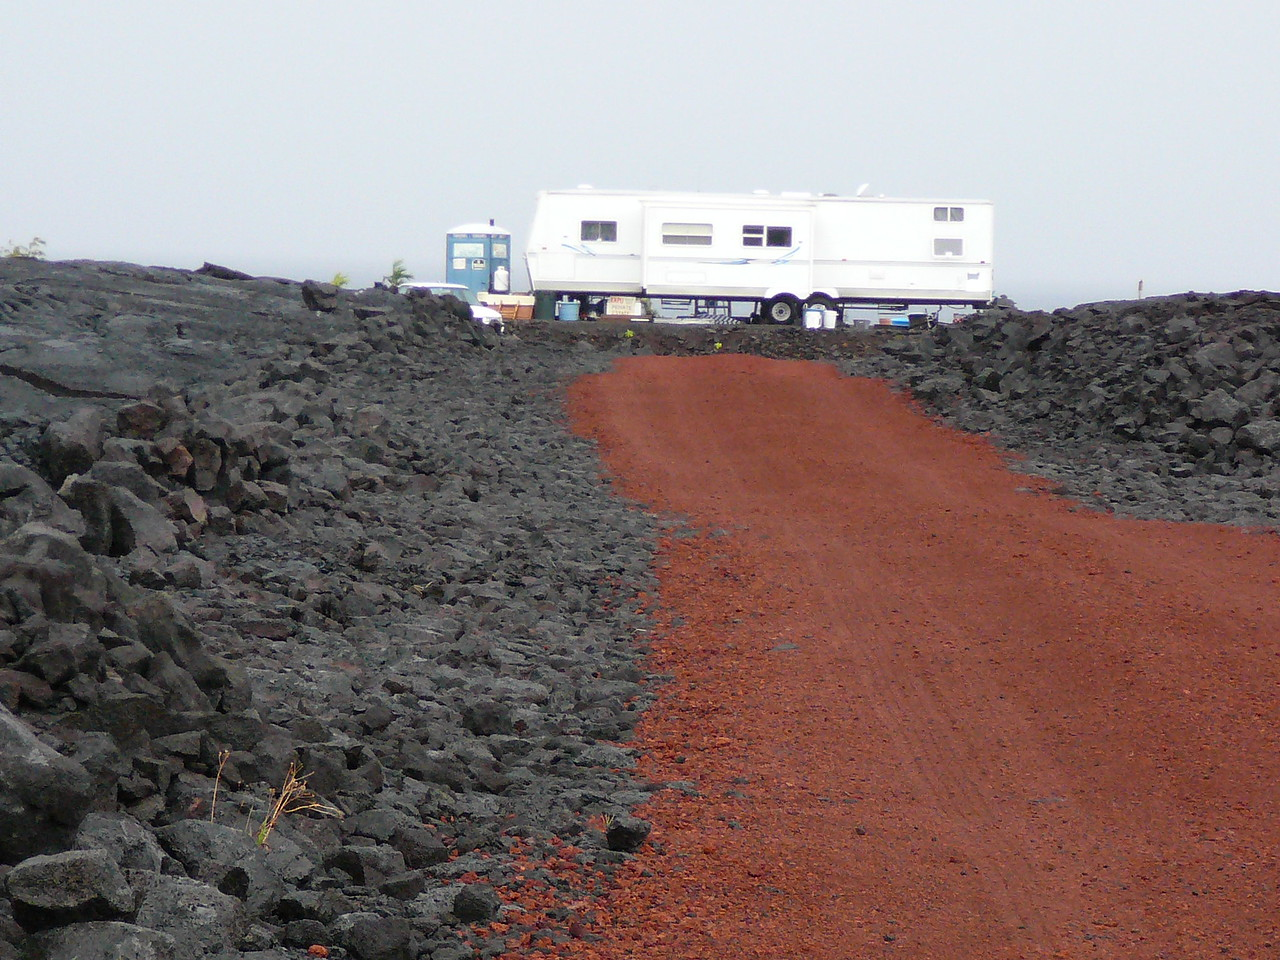 A home in the lava